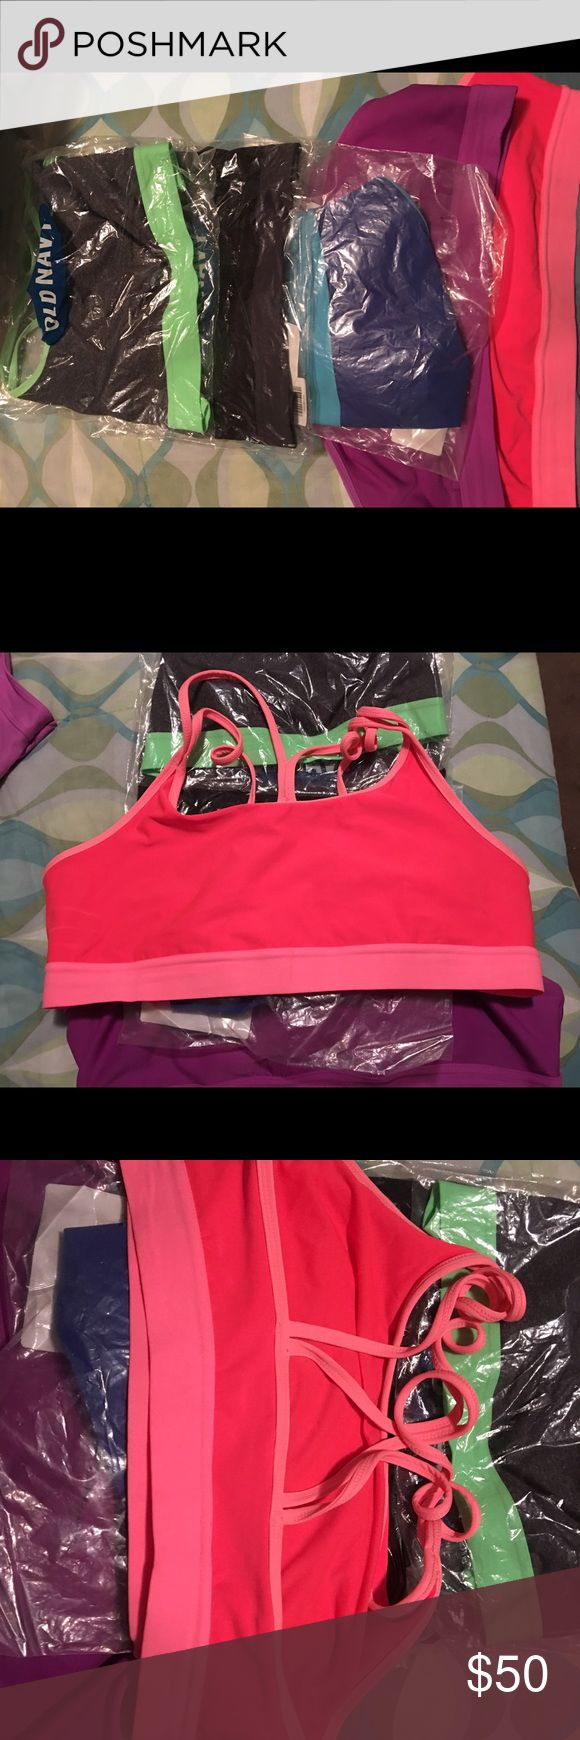 5 Old Navy sports bras 5 Old Navy sports bras for low/medium impact exercise. Two are in excellent used condition and the other 3 are new in original packaging. Old Navy Other